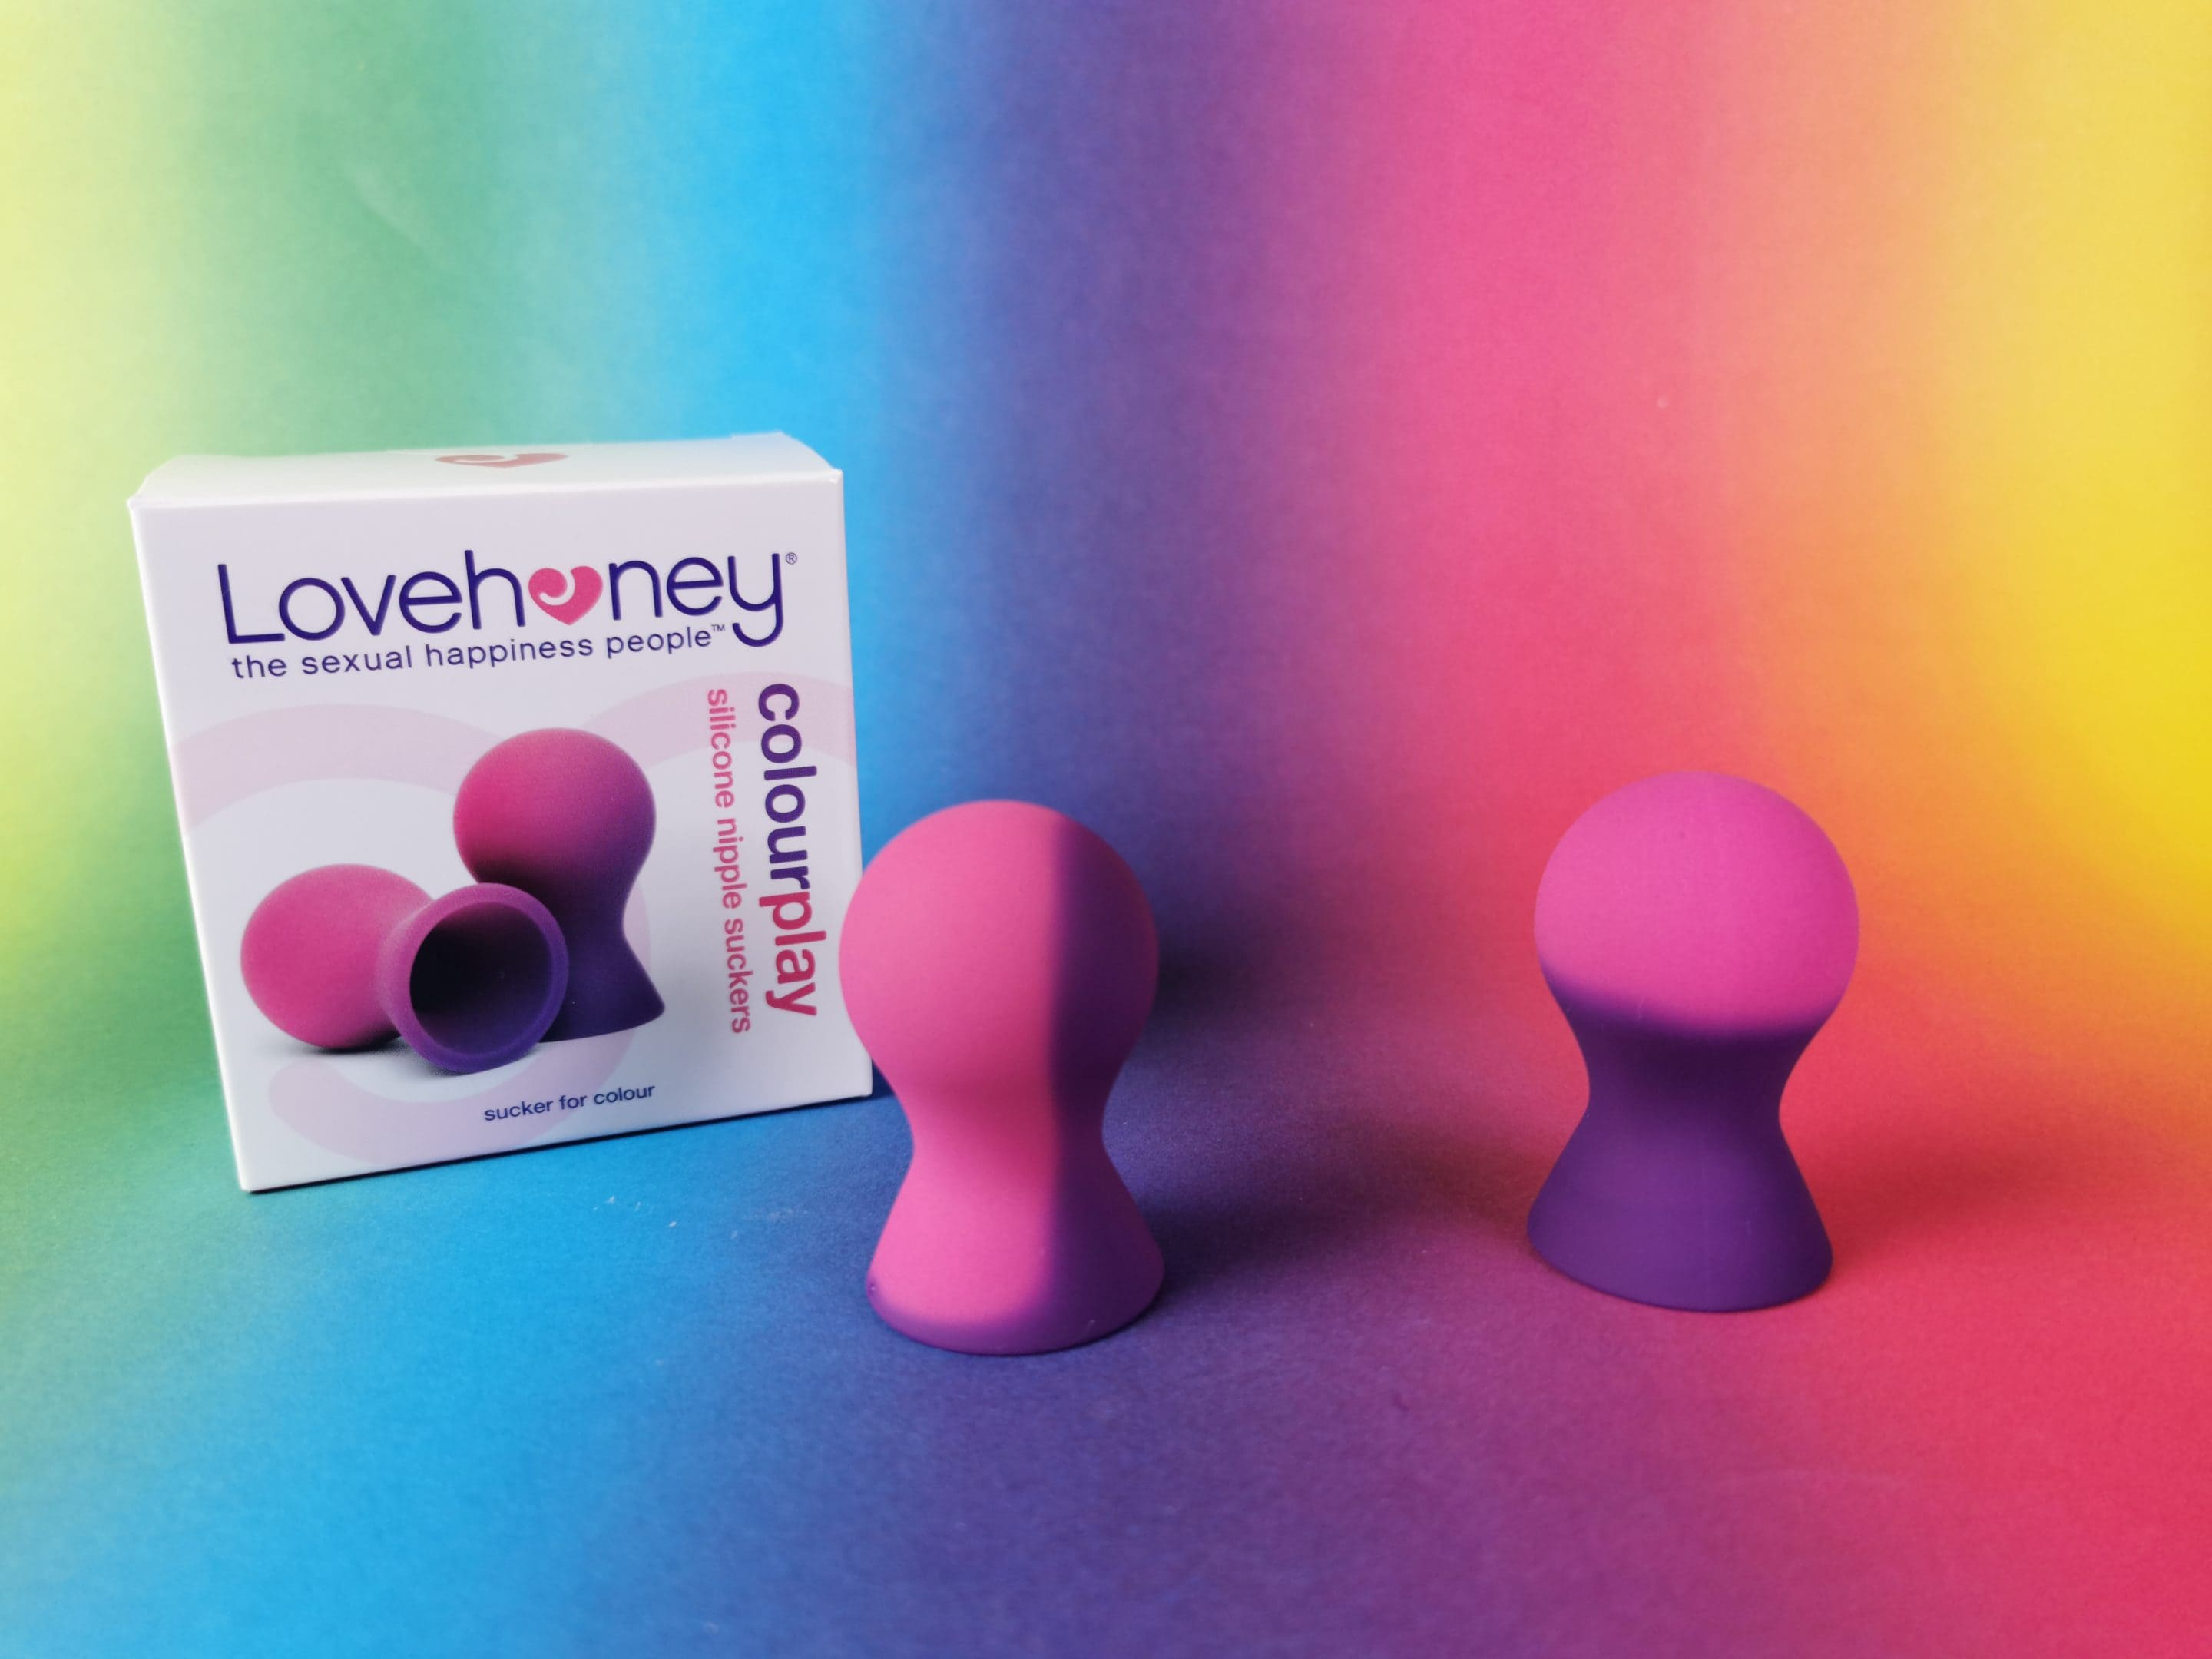 Sextoy review: Lovehoney Colourplay Colour-Changing Silicone Nipple Suckers